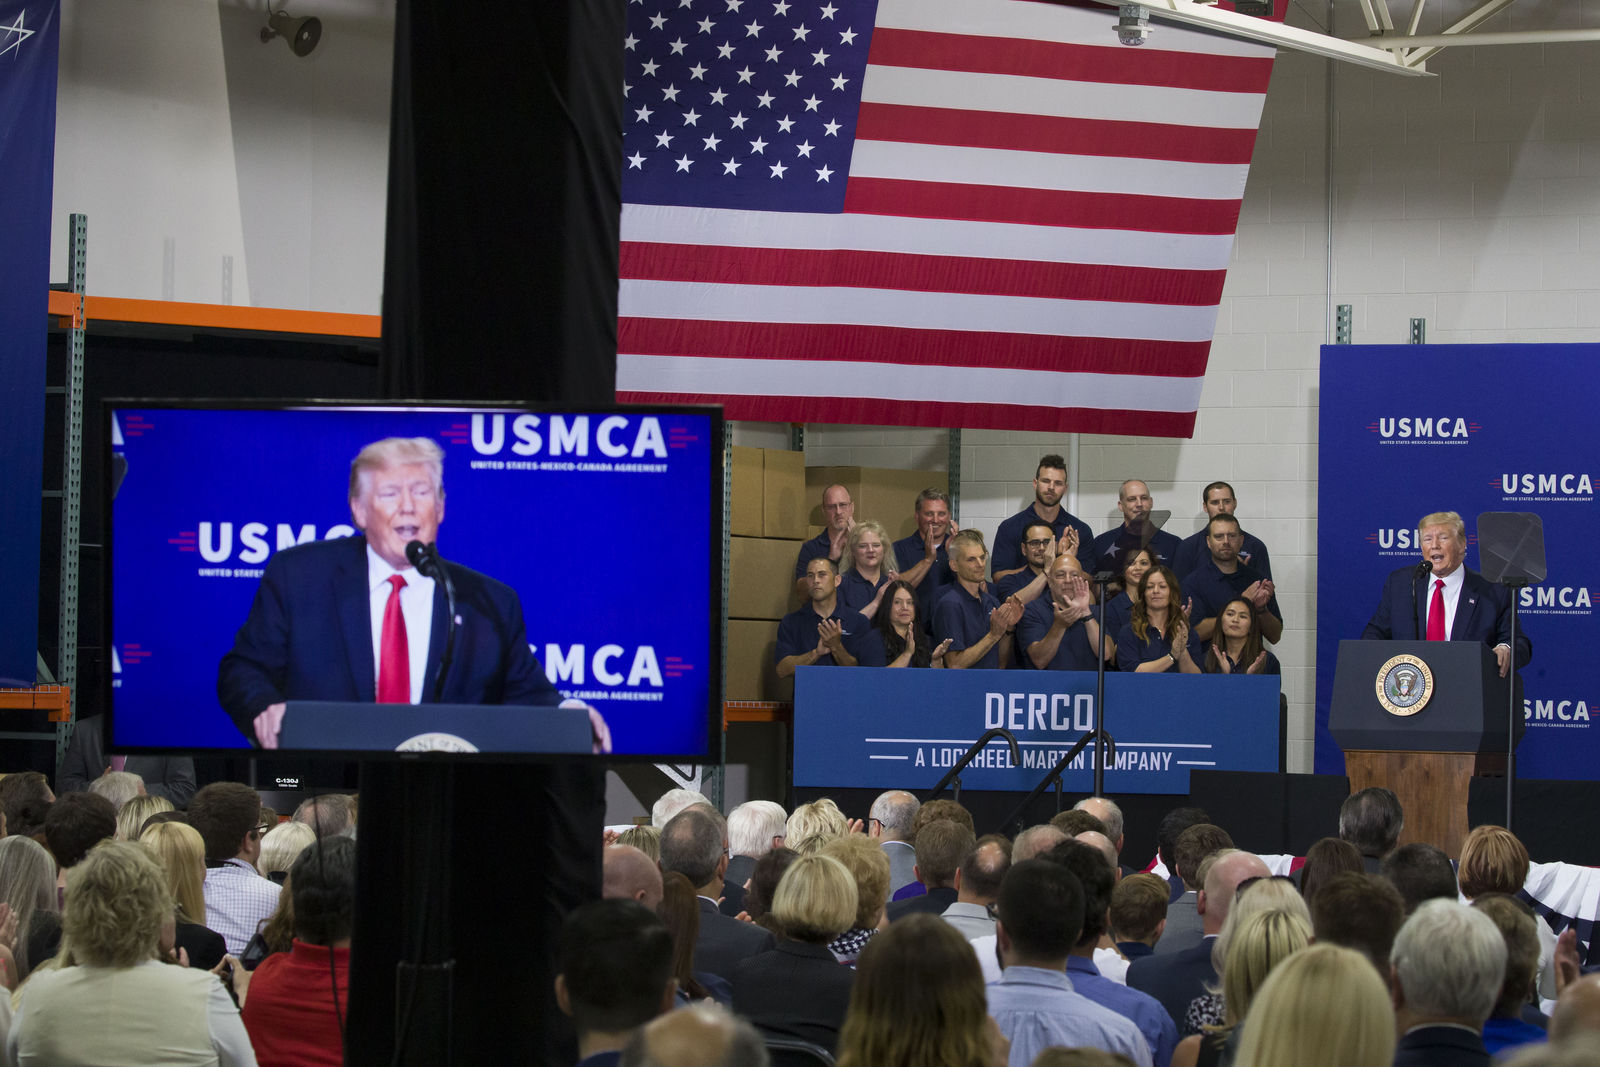 President Donald Trump speaks at Derco Aerospace Inc., a subsidiary of Lockheed Martin, Friday, July 12, 2019, in Milwaukee. (AP Photo/Alex Brandon)